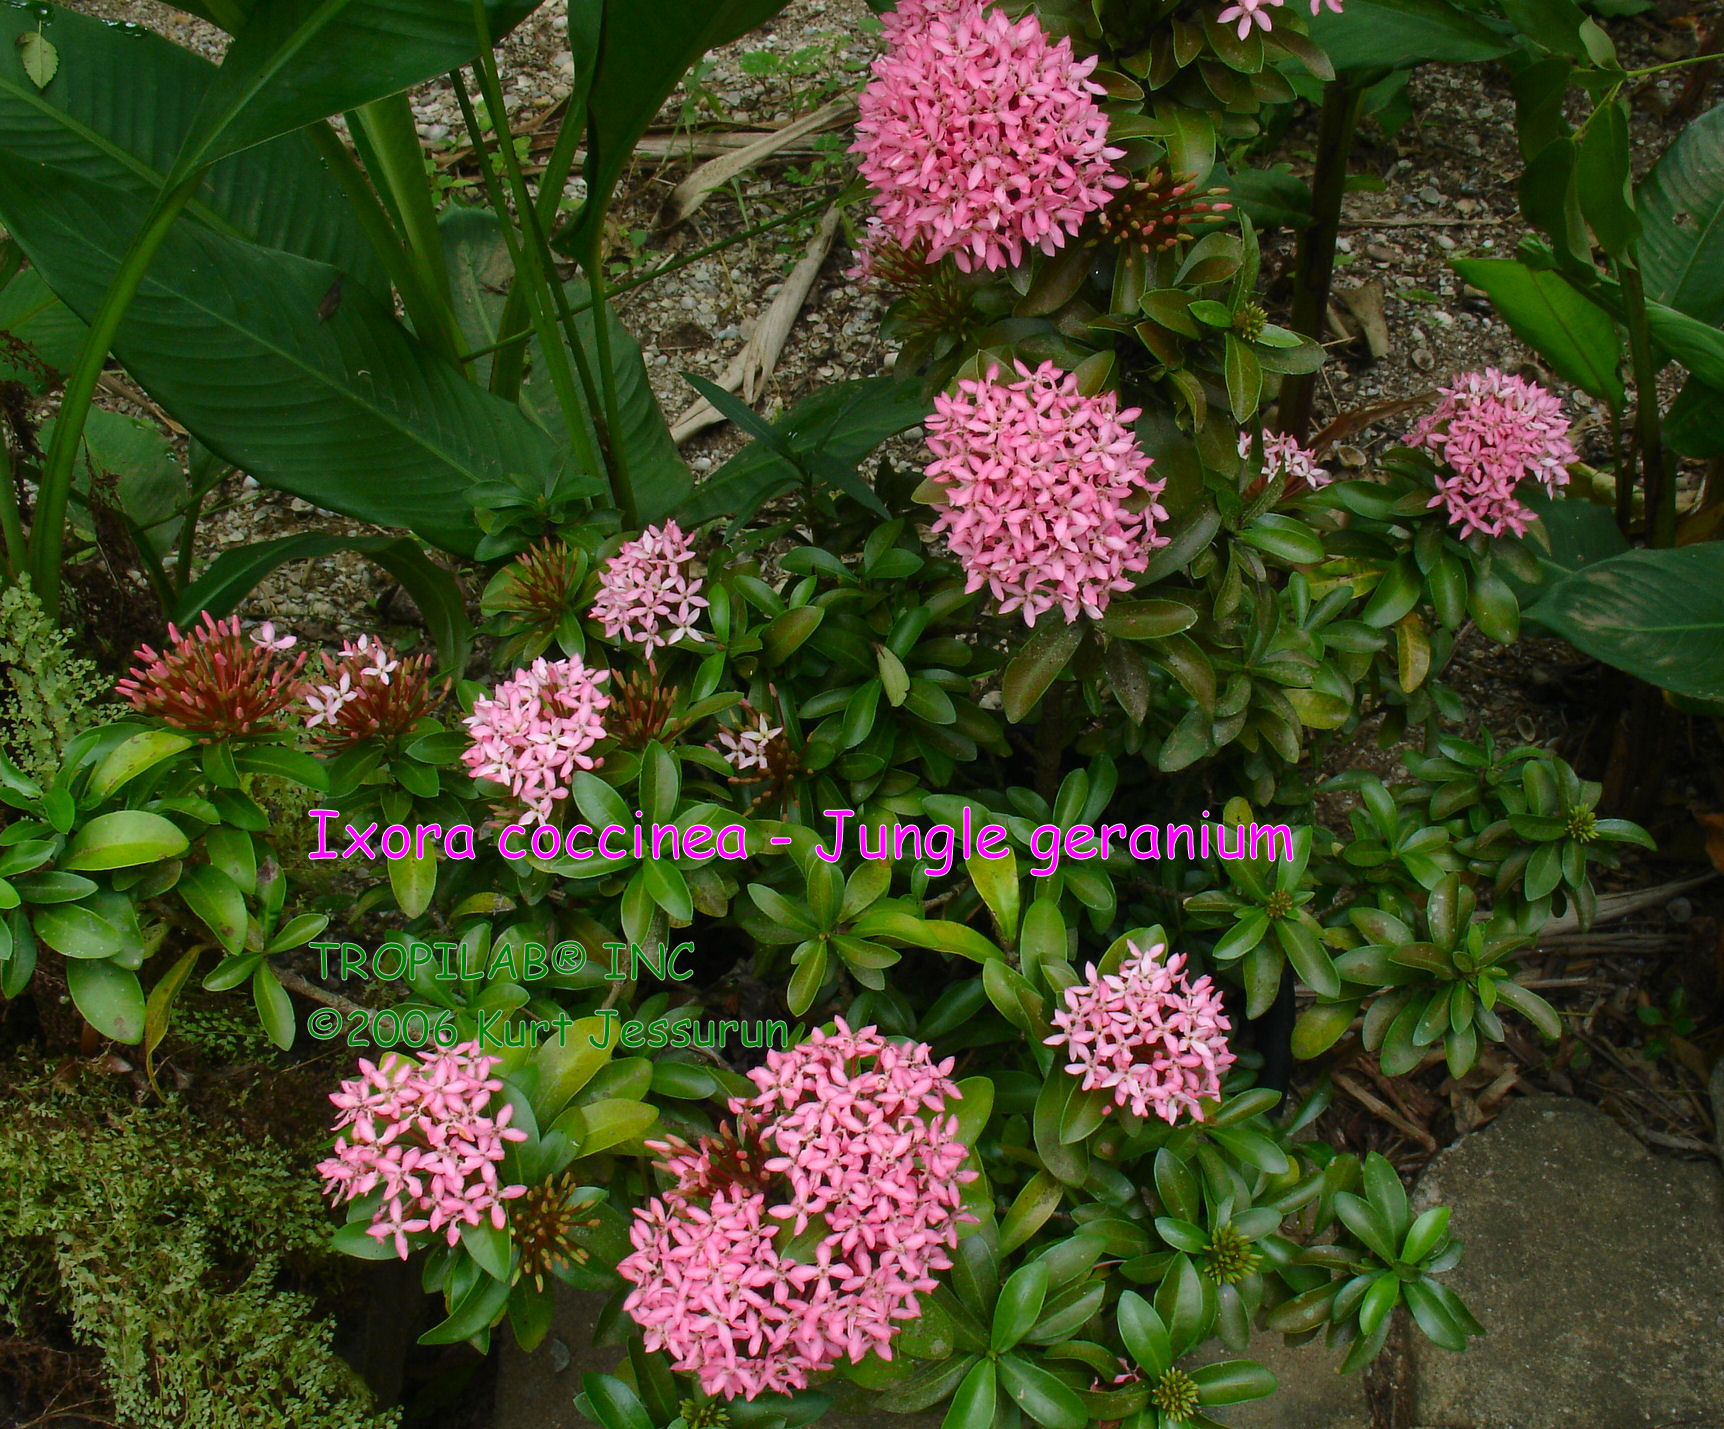 Ixora coccinea - Jungle geranium pink